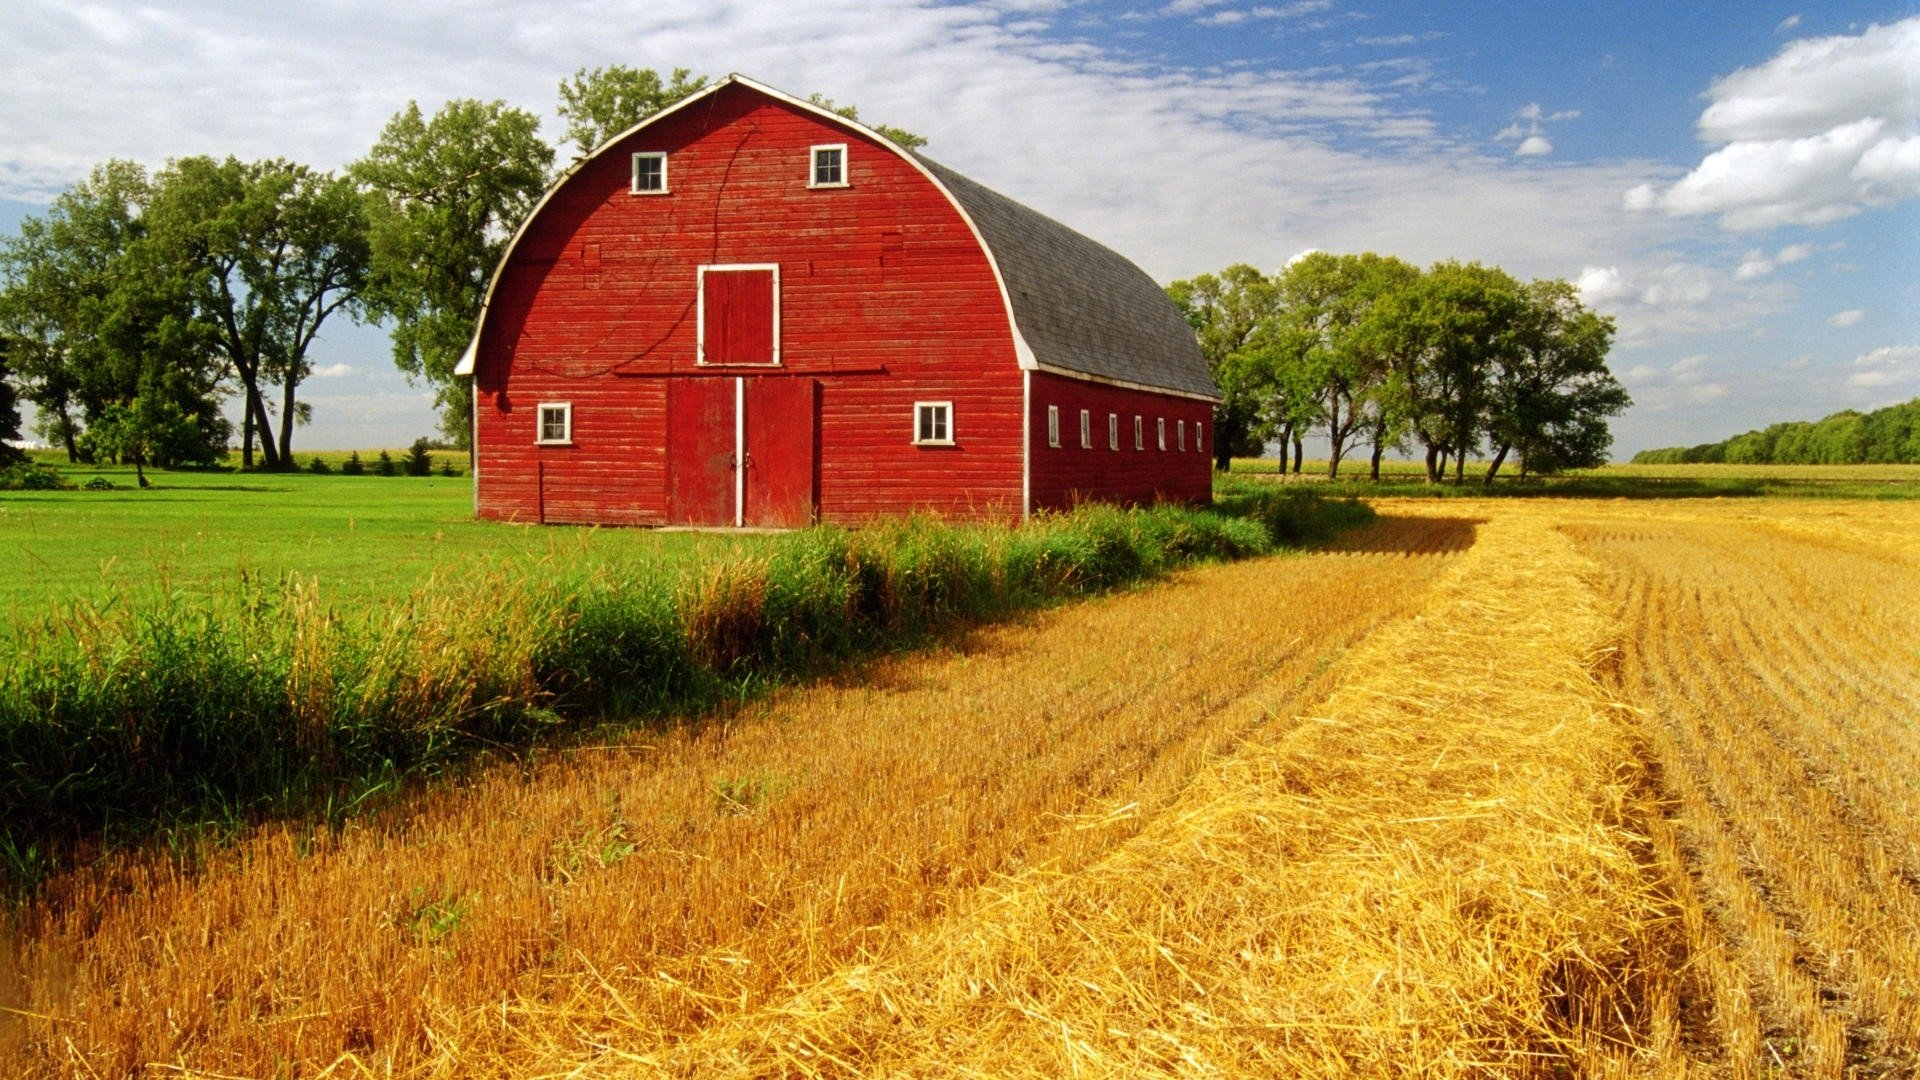 Old Country Farm House My Nomadic Needs Pinterest 1920x1080